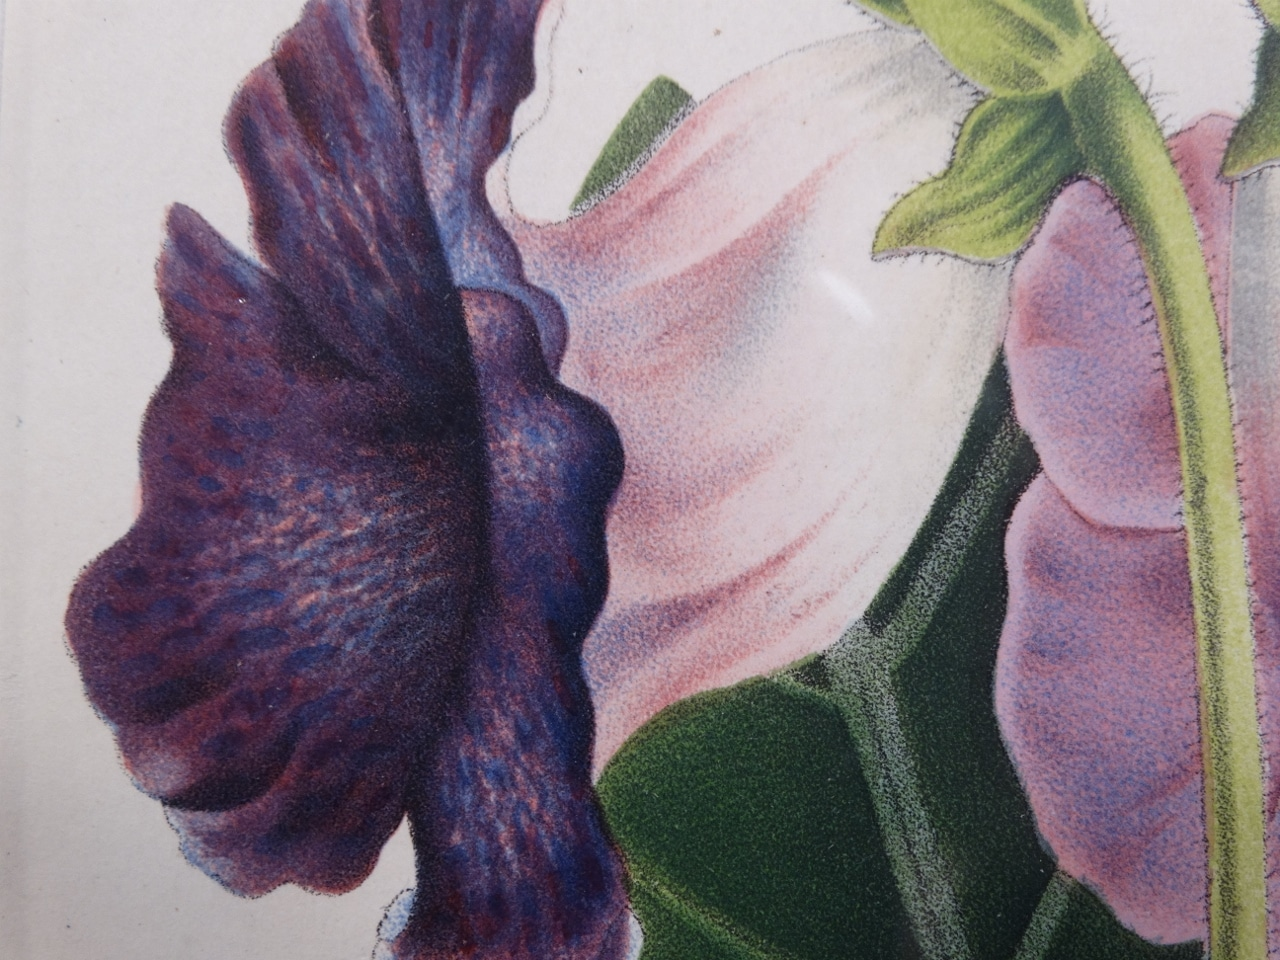 spectacular detail in mid 19th century botanical art.